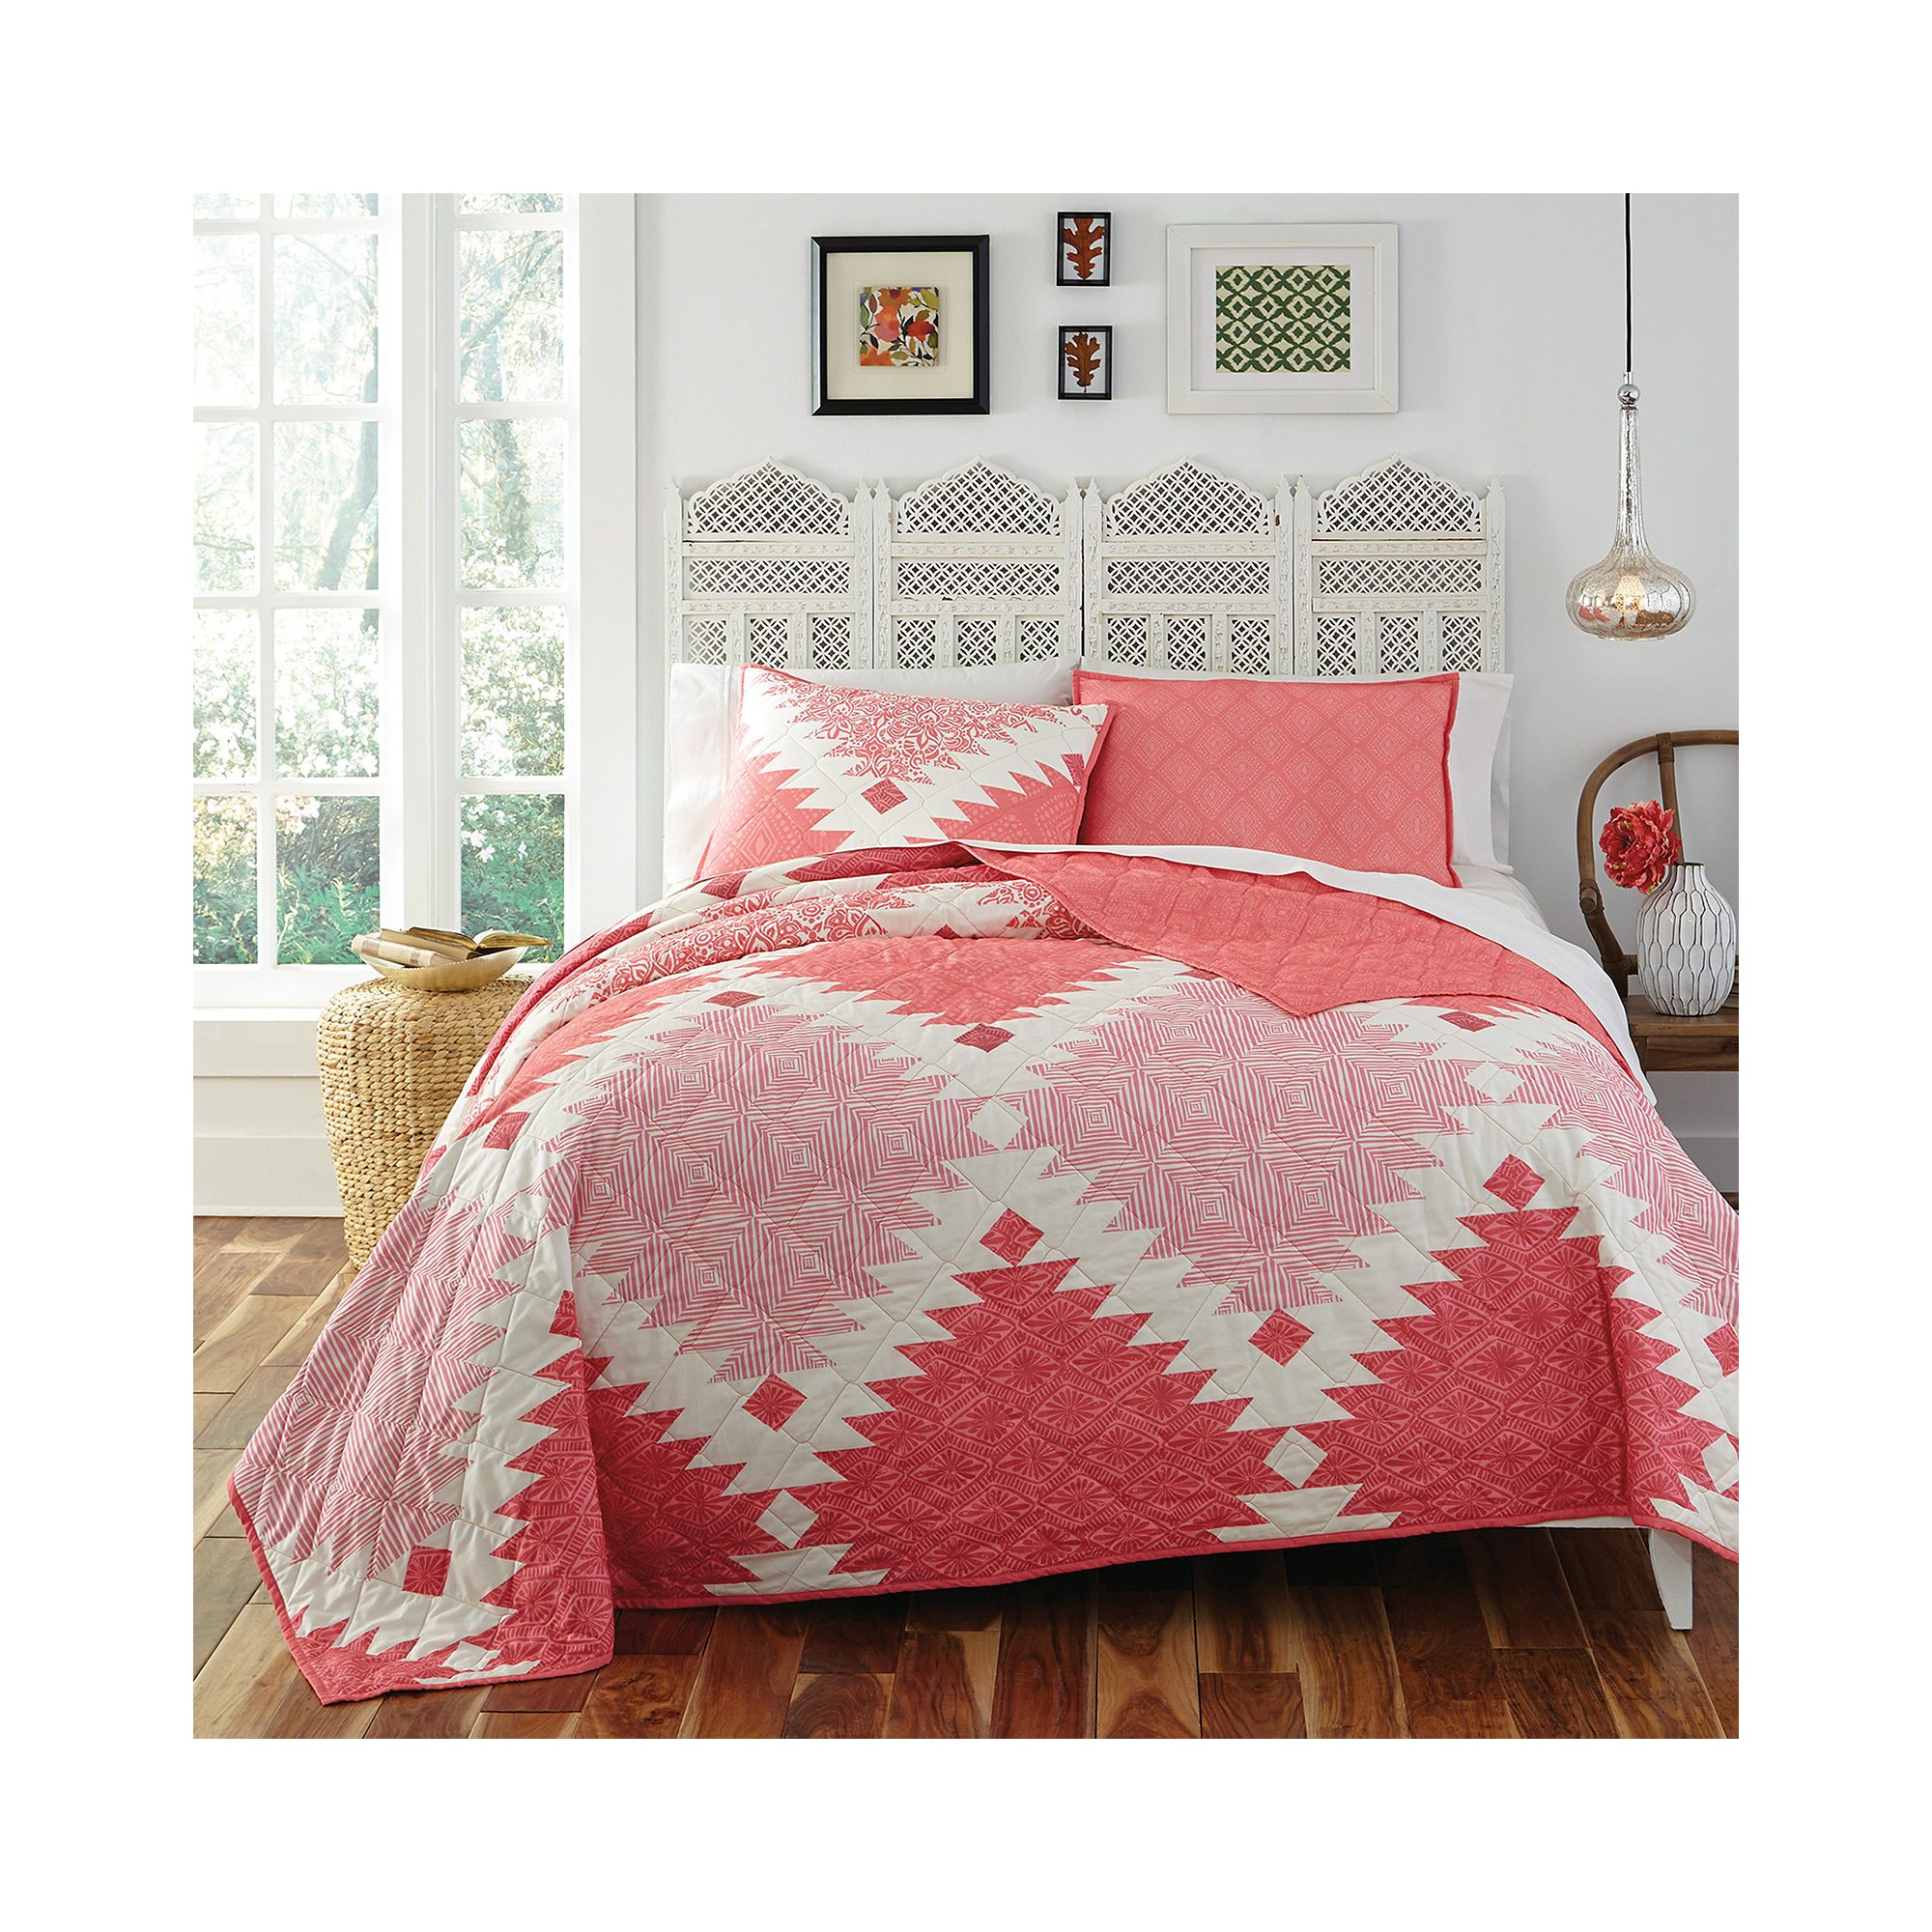 KD Spain Kaleo 3-Pc. Reversible Quilt Sets